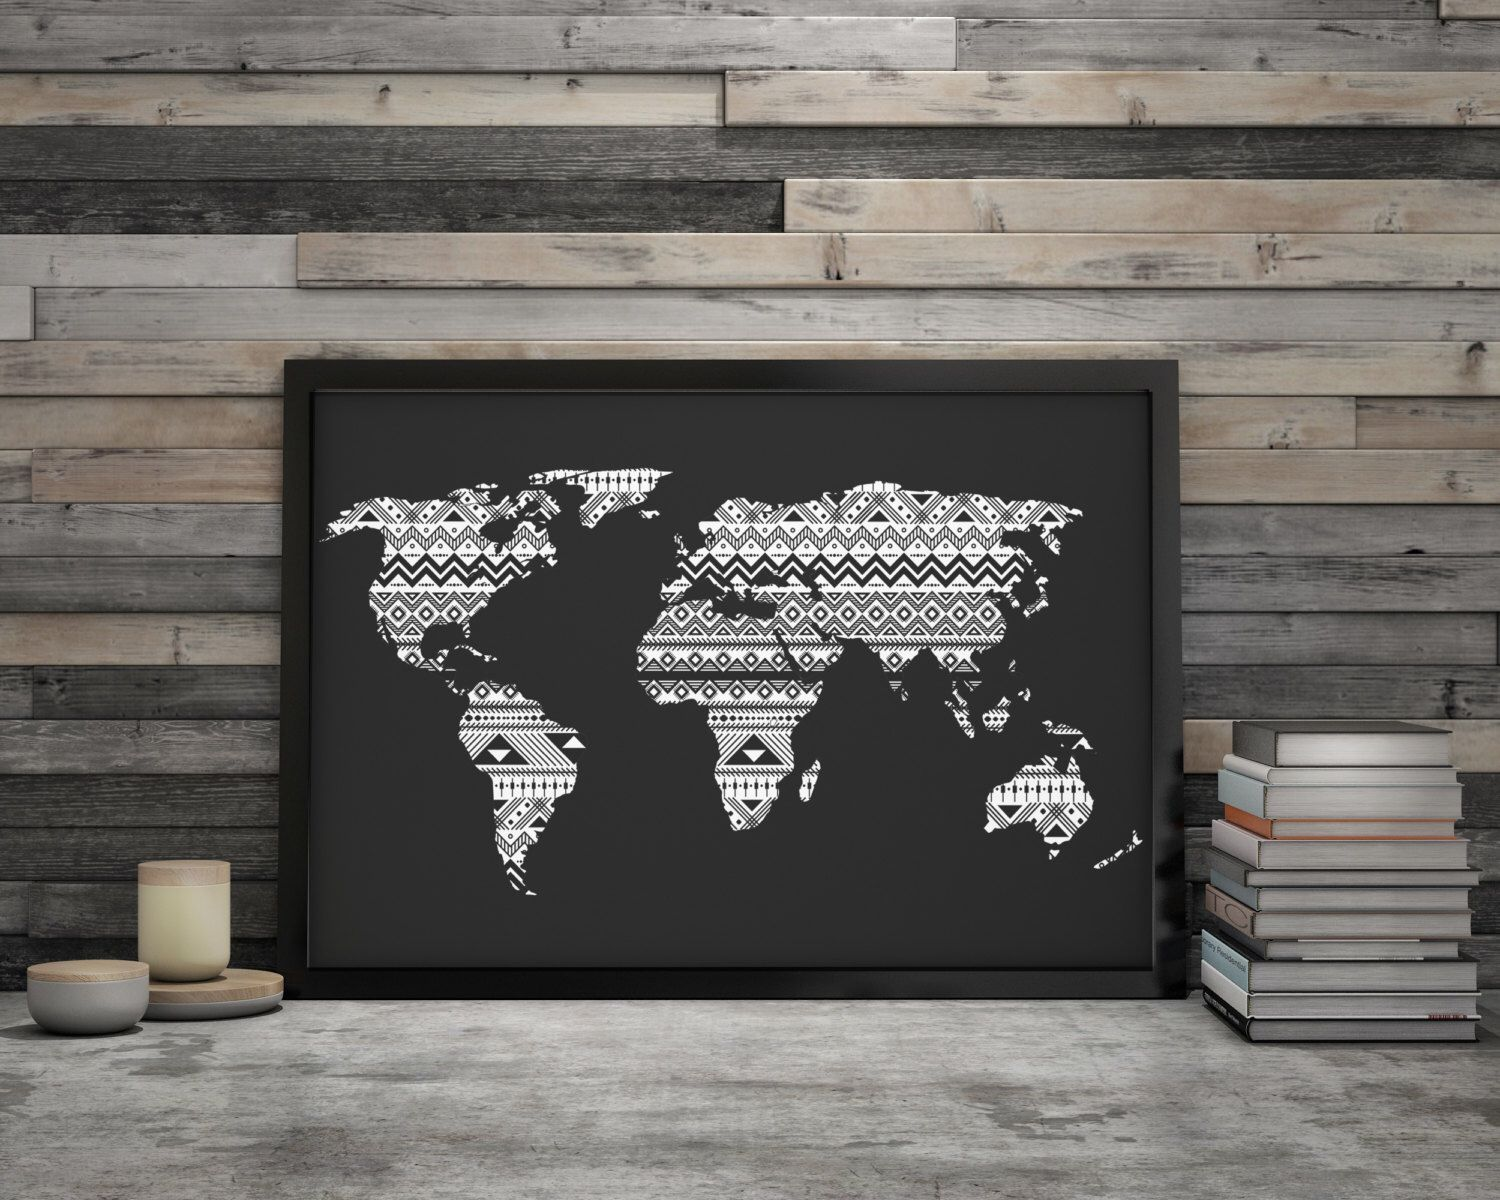 World Map Poster Large Black And White Wall Art World Map Download - World map poster large download